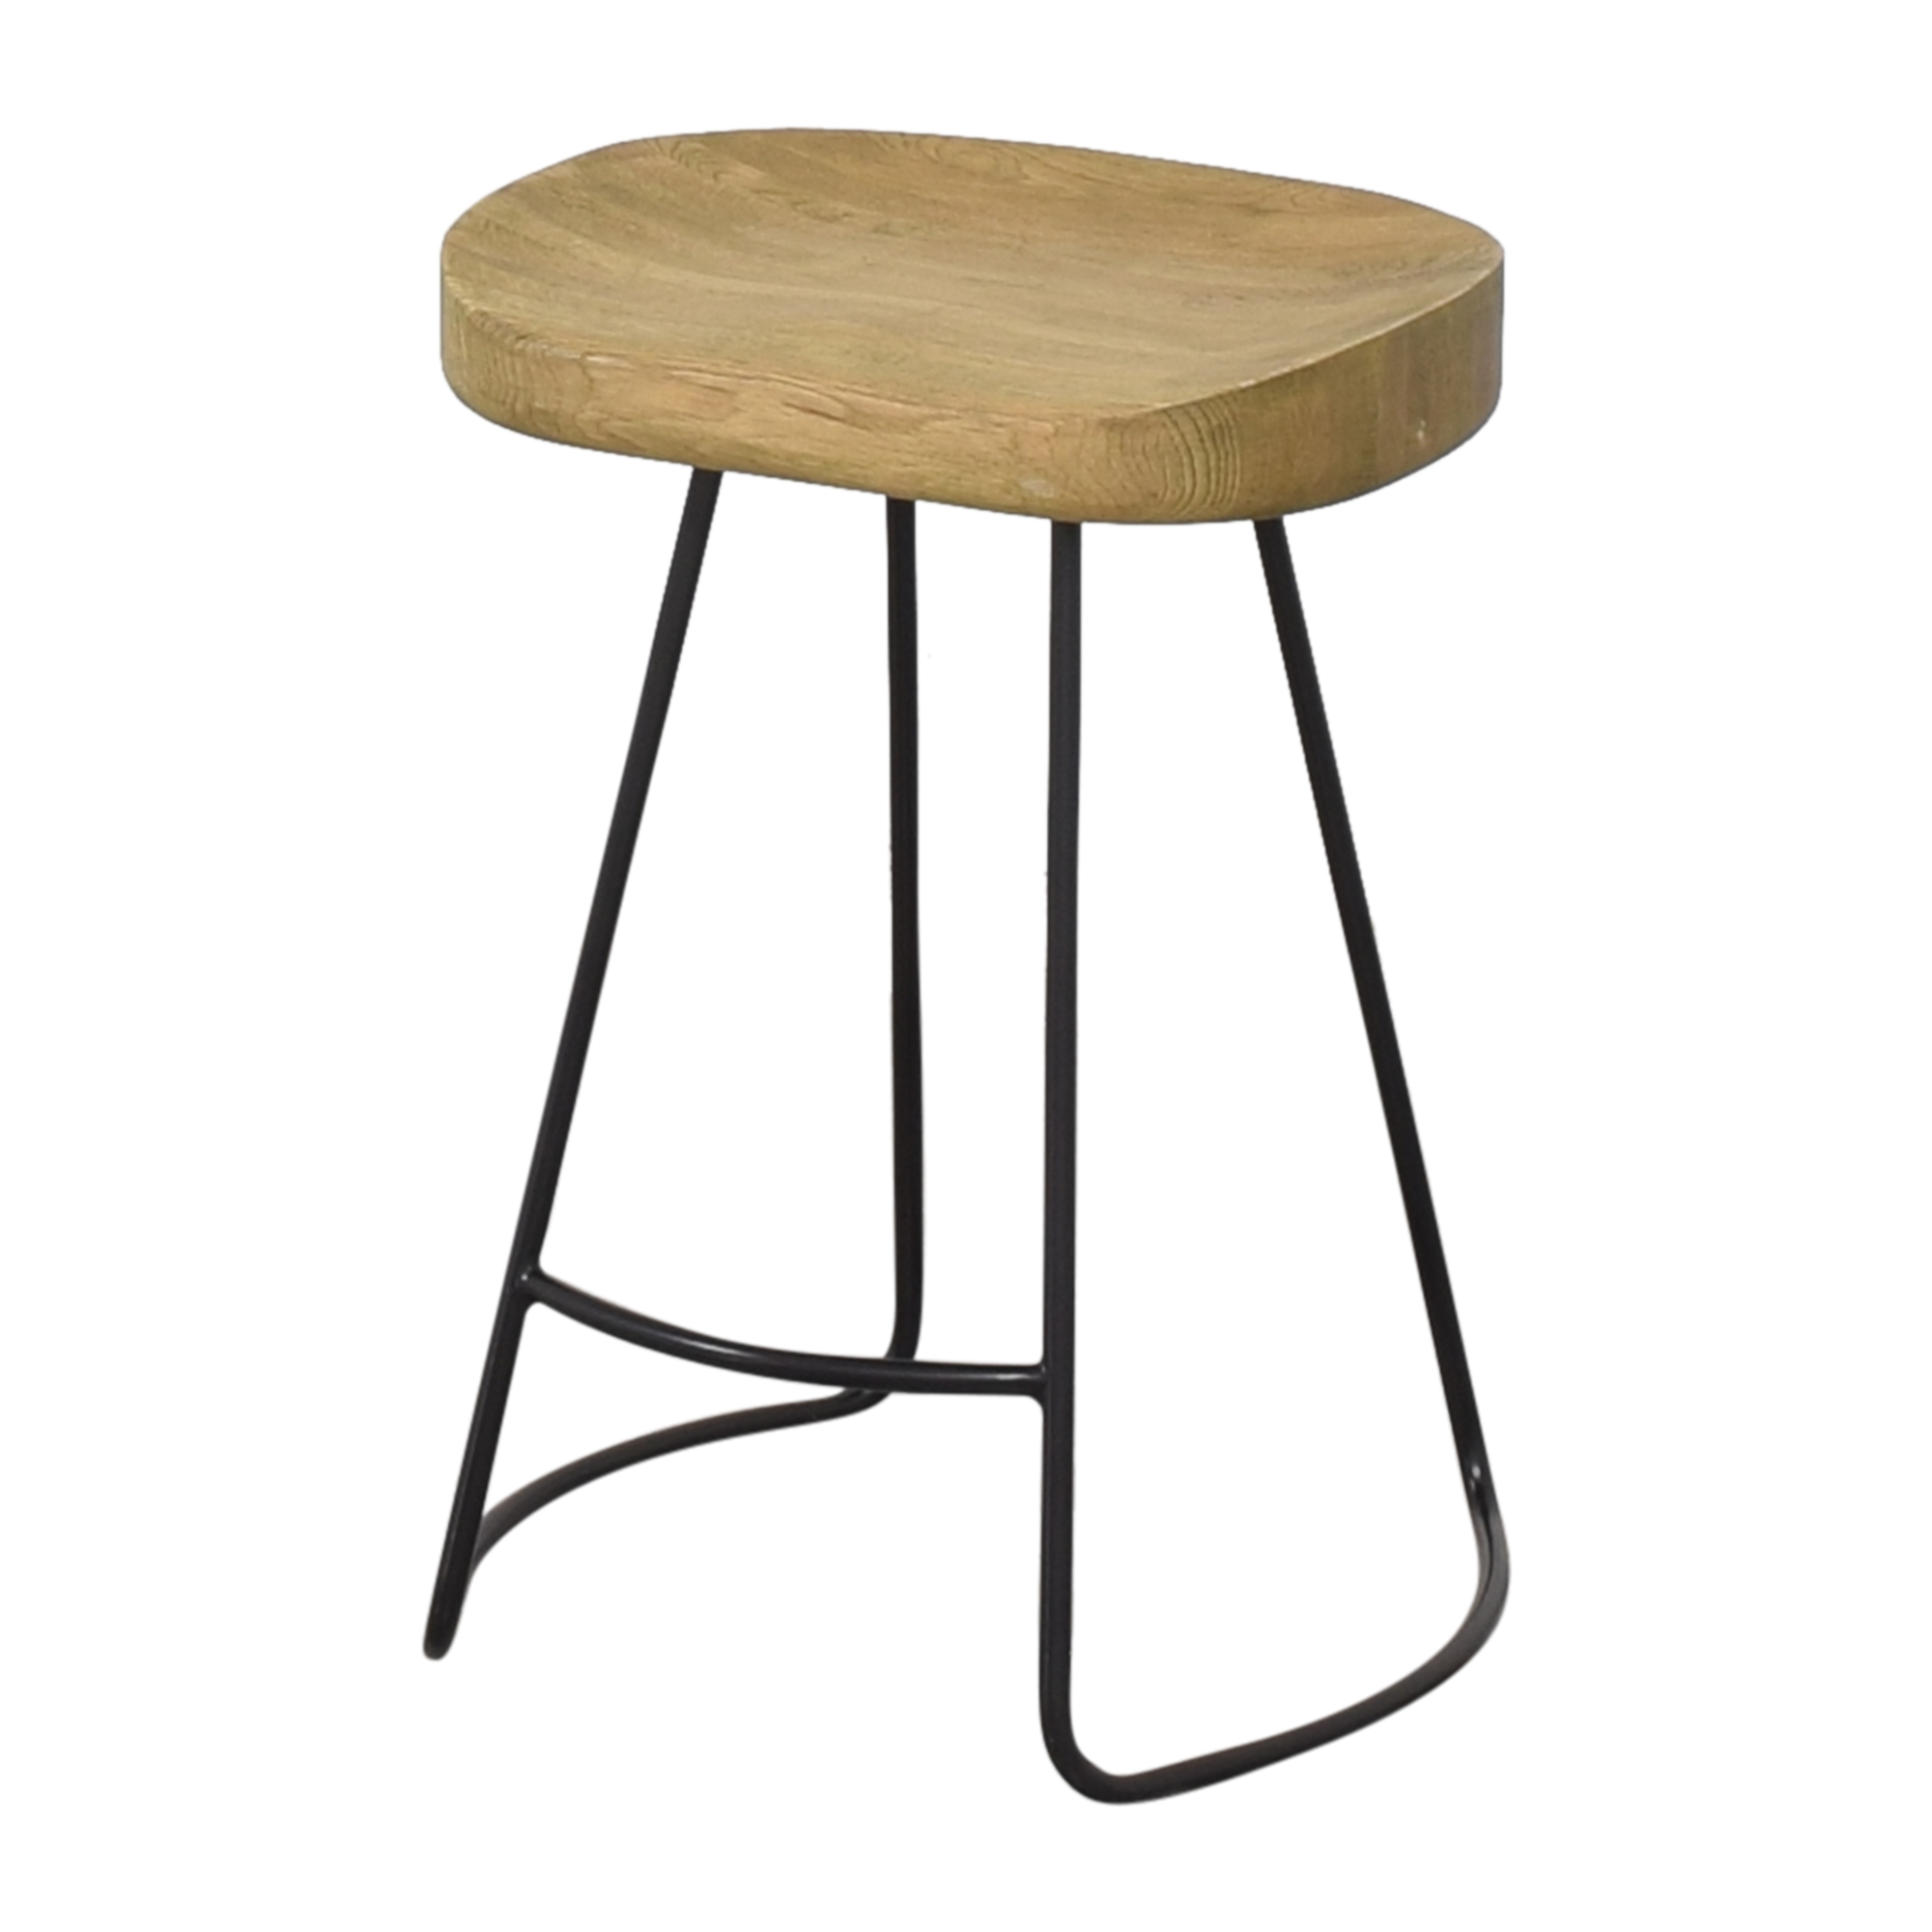 buy Restoration Hardware Restoration Hardware 1950s Tractor Seat Counter Stools online